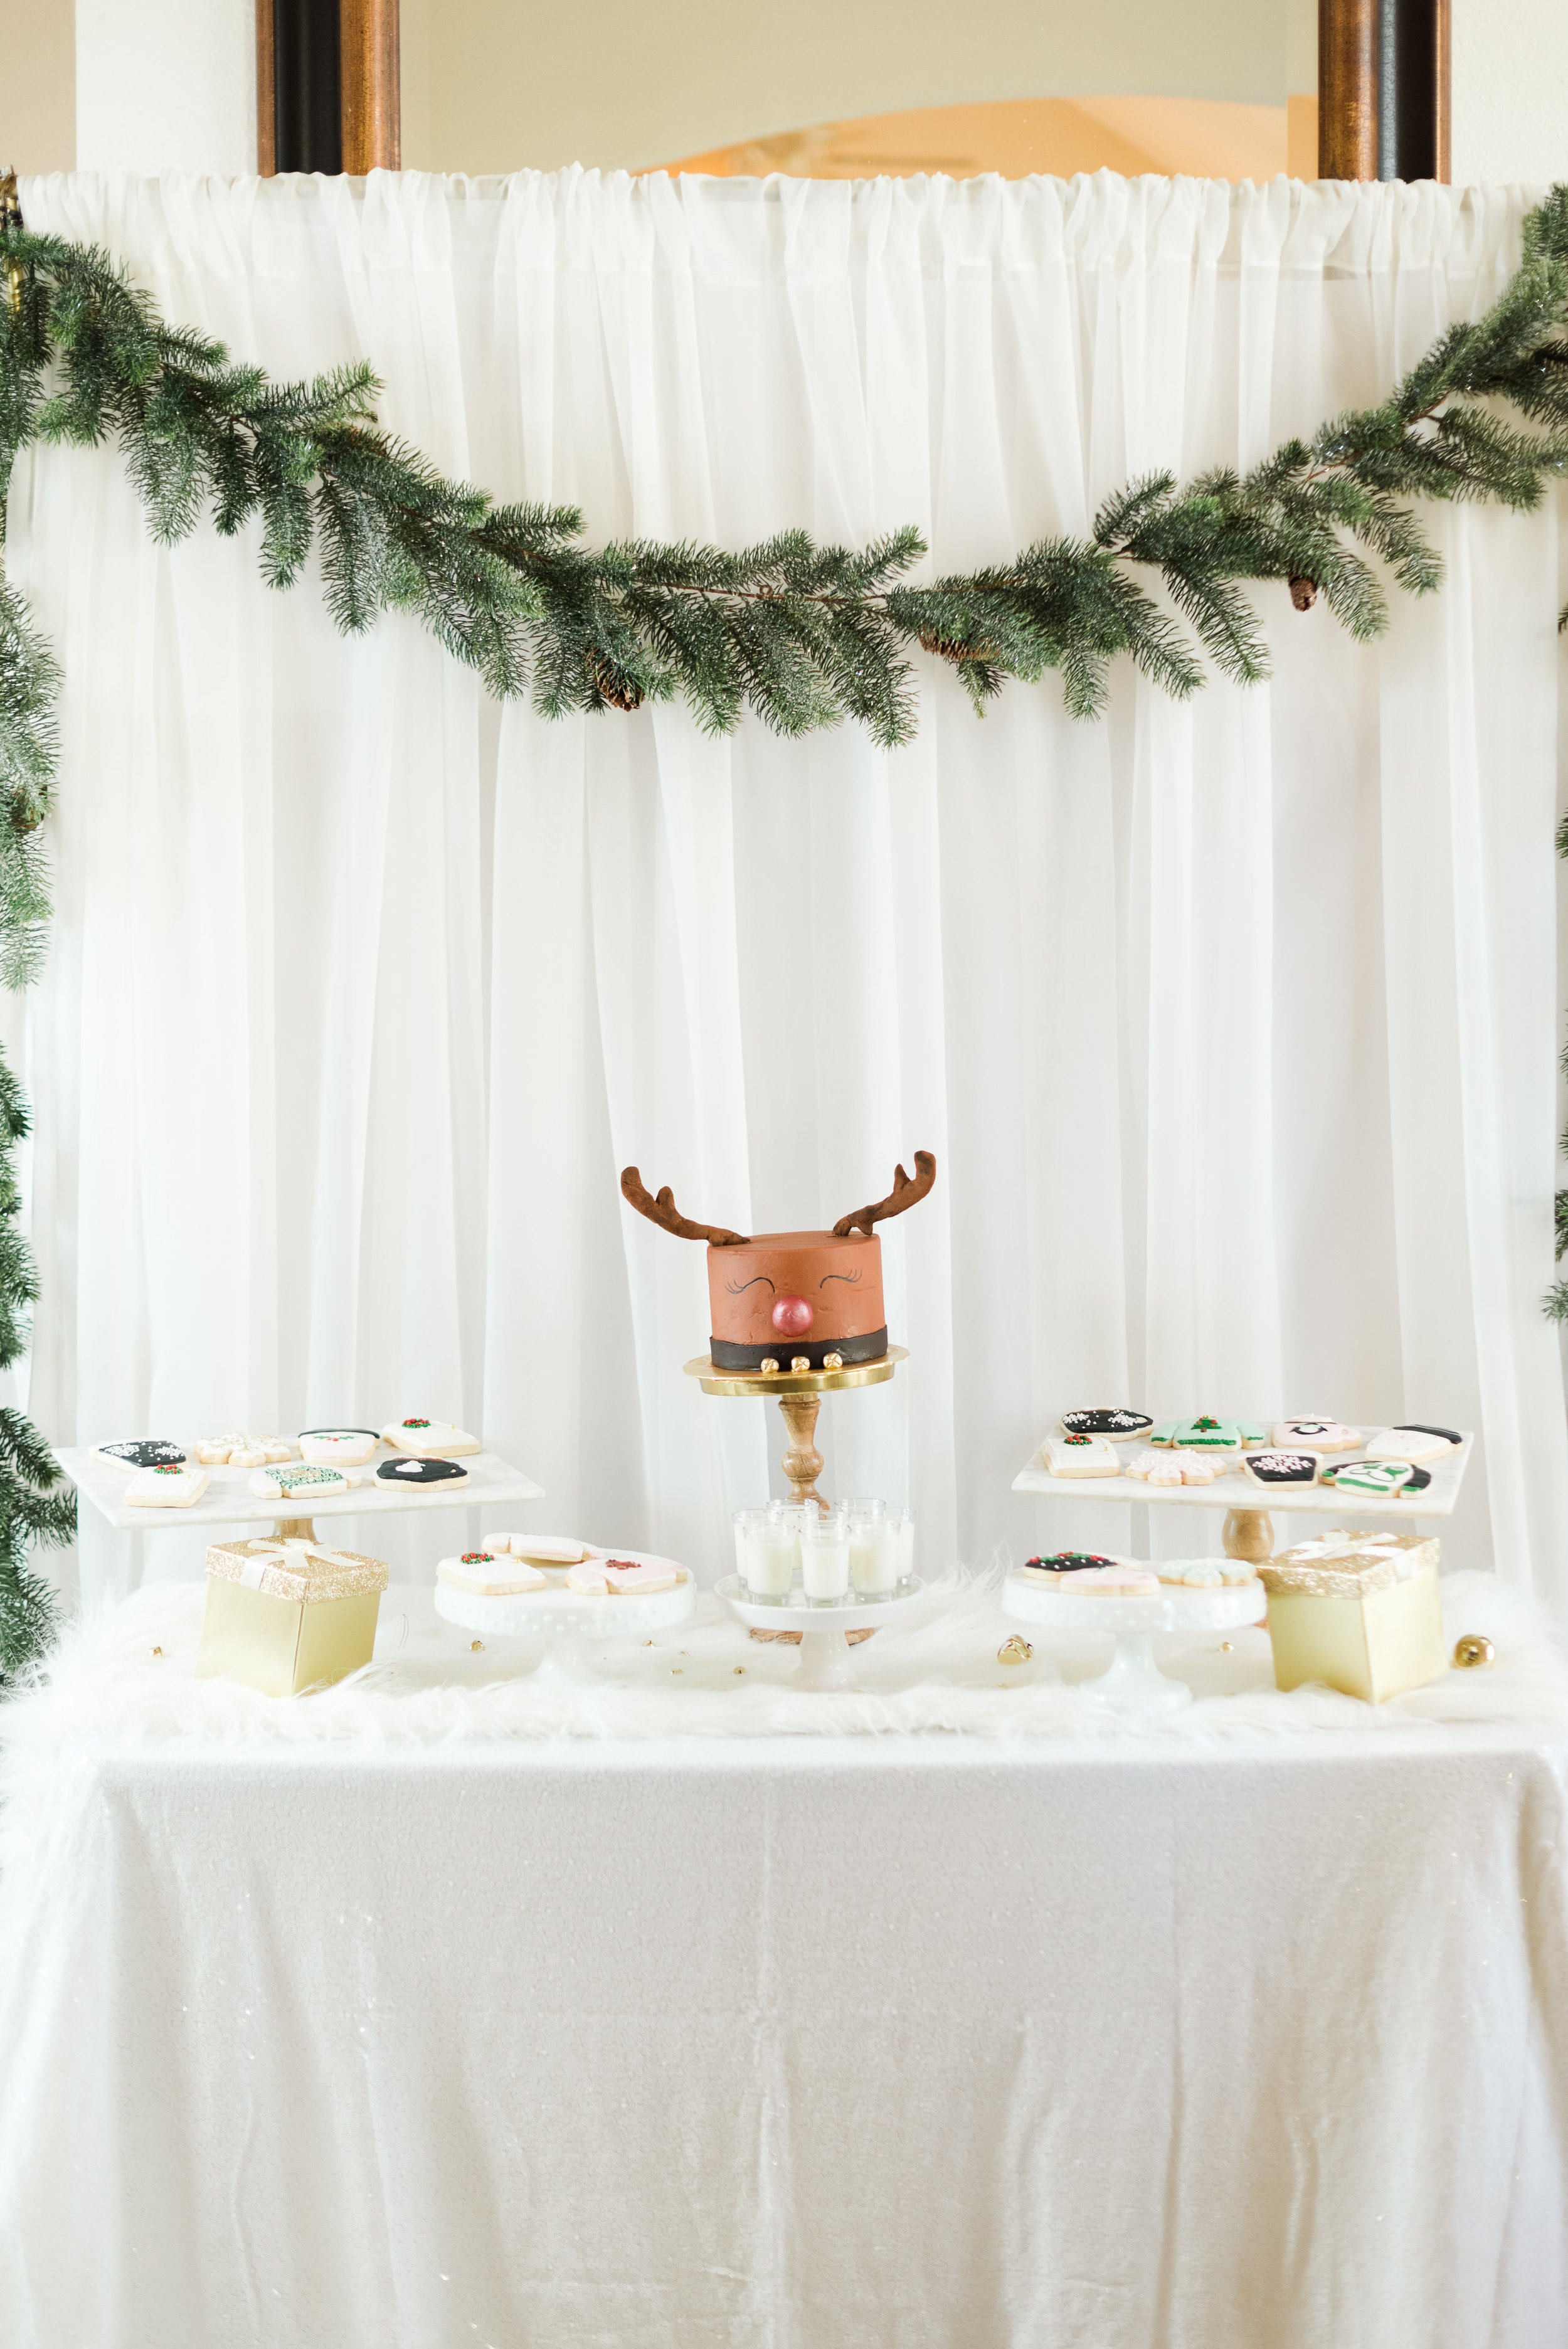 A-Rudolph-Themed-Cake-That's-the-Sweetest-Addition-to-Your-Christmas-Dessert-Display